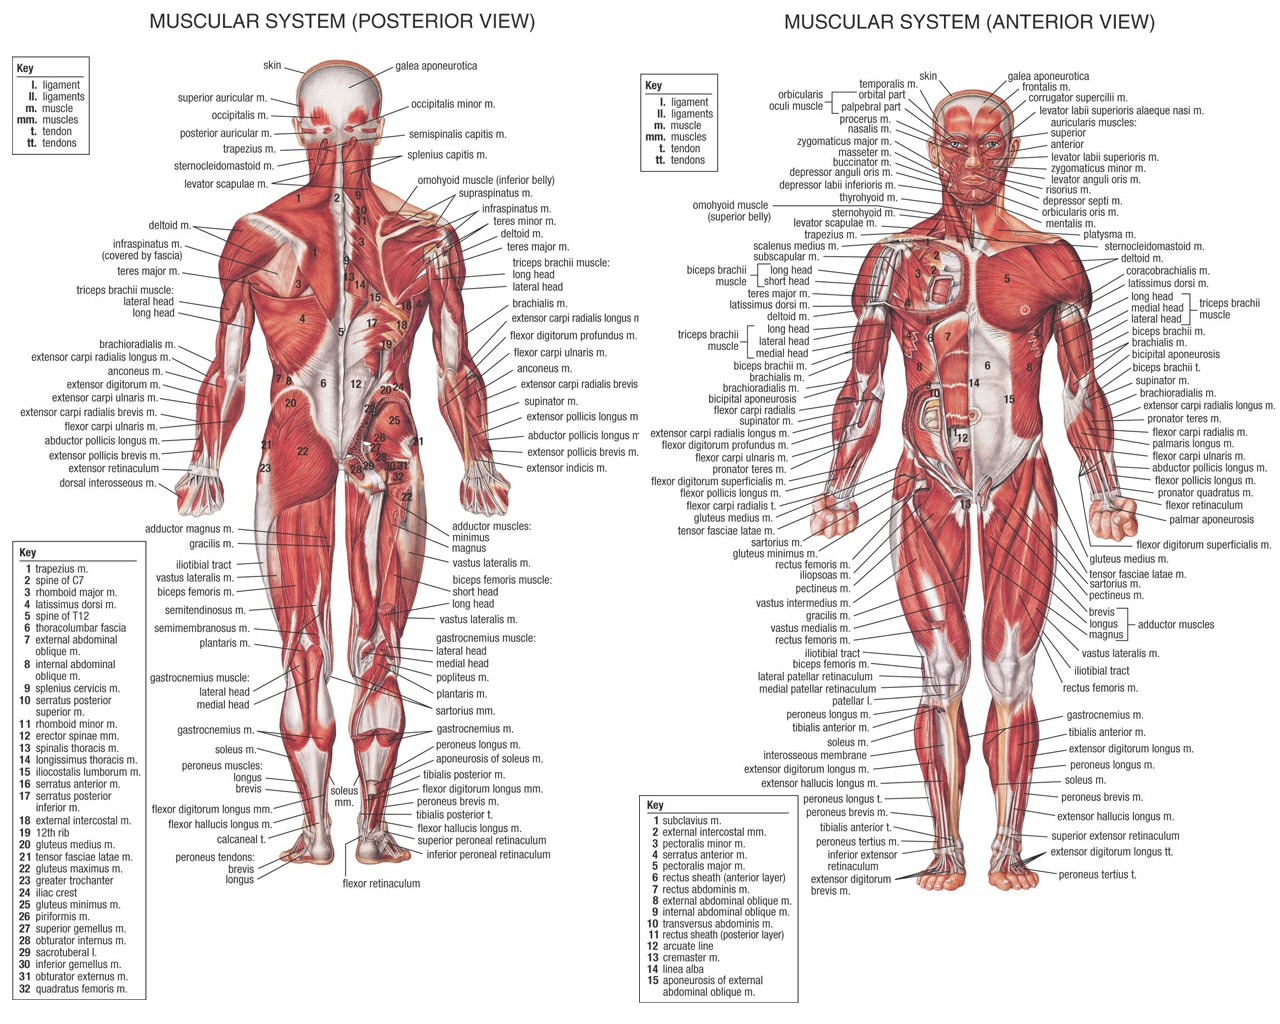 Muscles Of Human Body Diagram Human Anatomy Muscles   Kool.tk Pictures Wallpapers